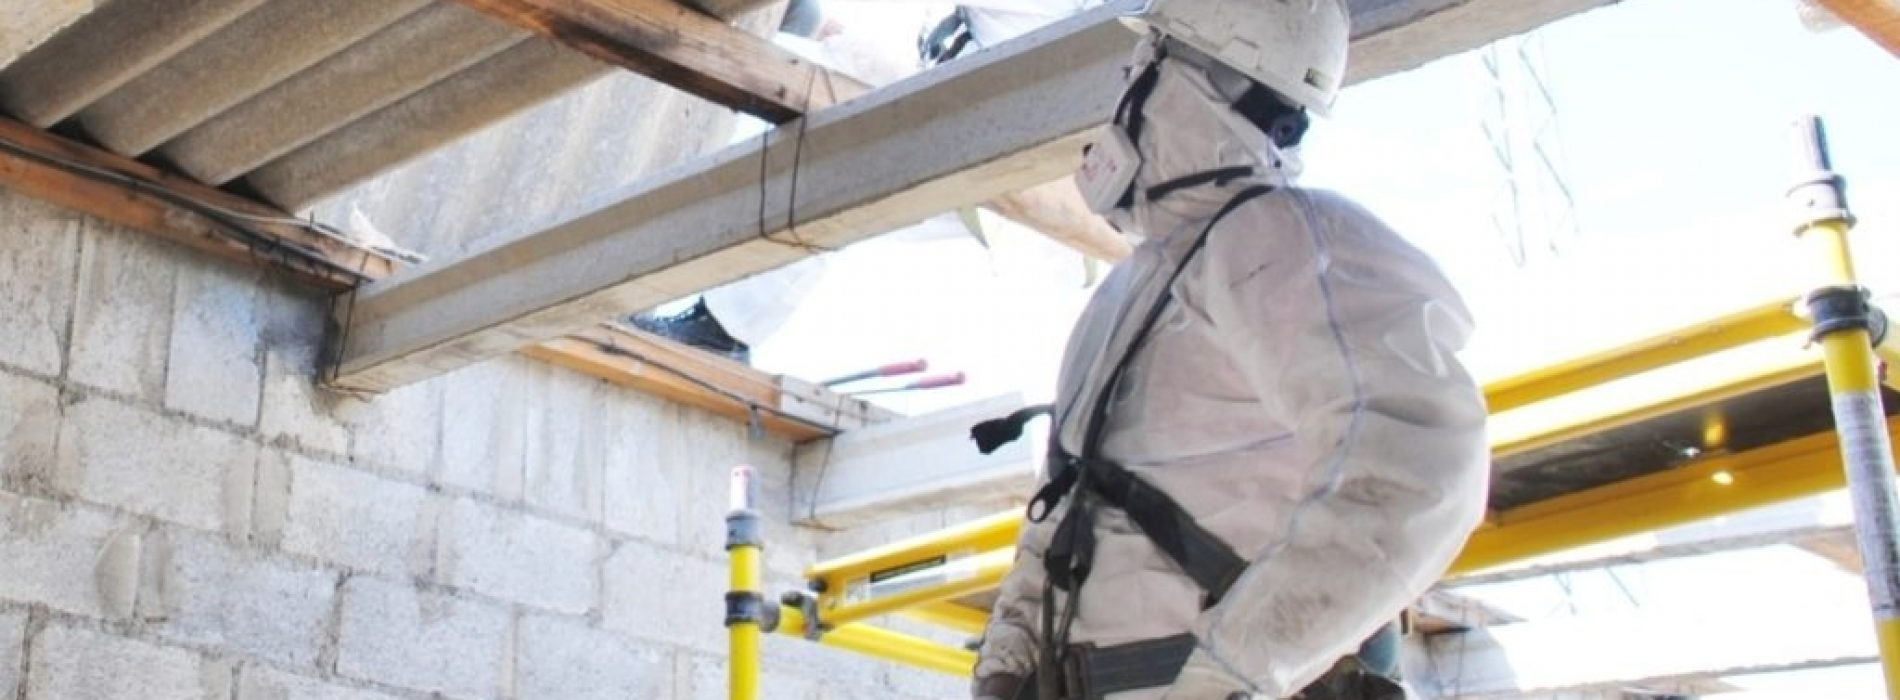 Asbestos testing: get rid of deadly viruses effectively